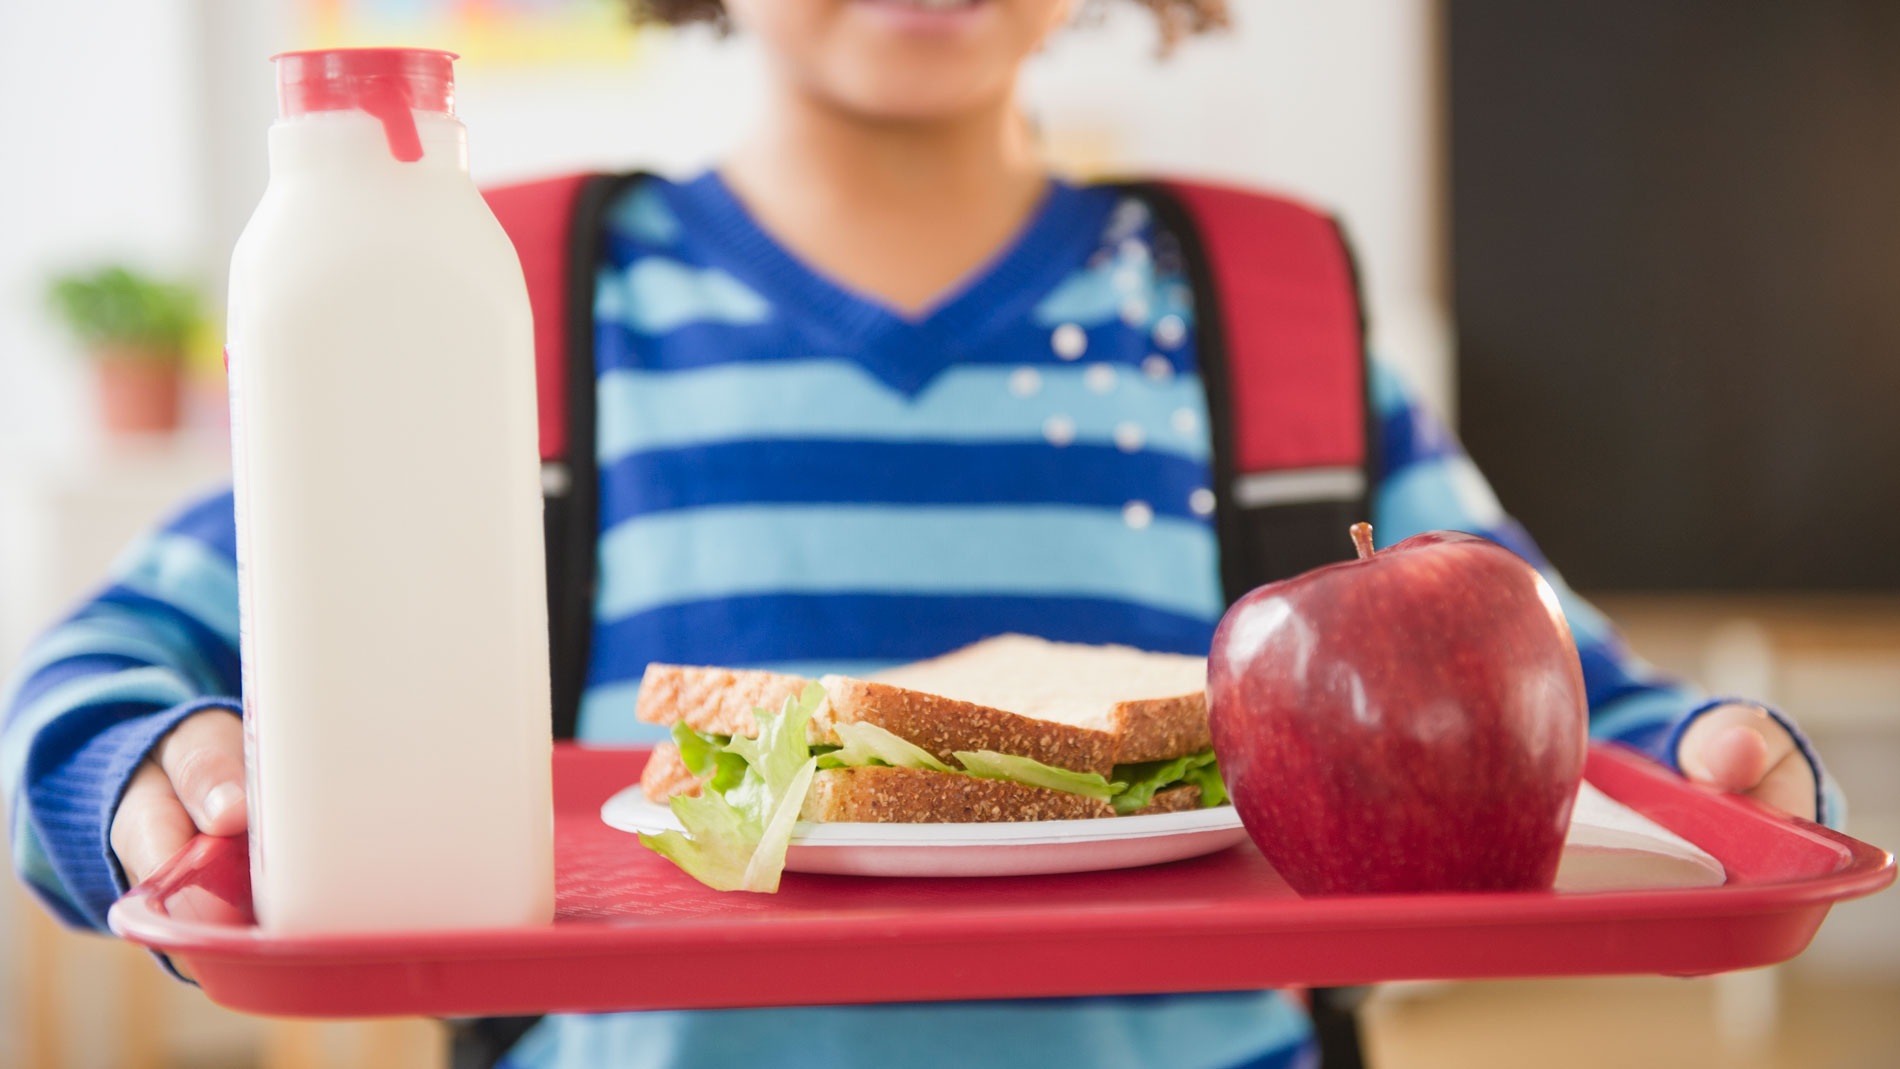 New Mexico Becomes the First State to Ban Lunch Shaming